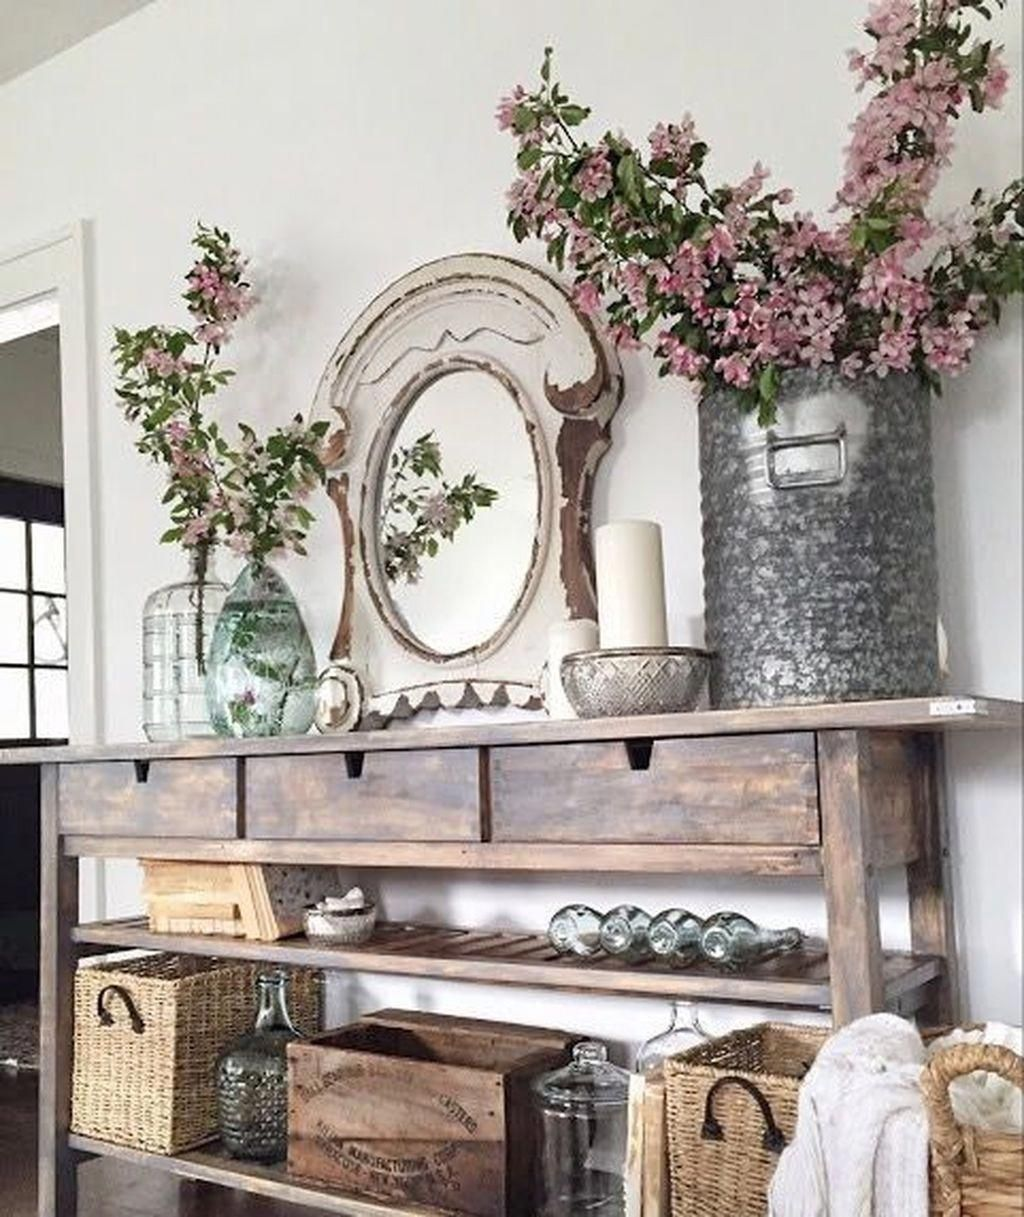 49 Cozy French Country Living Room Decor Ideas living